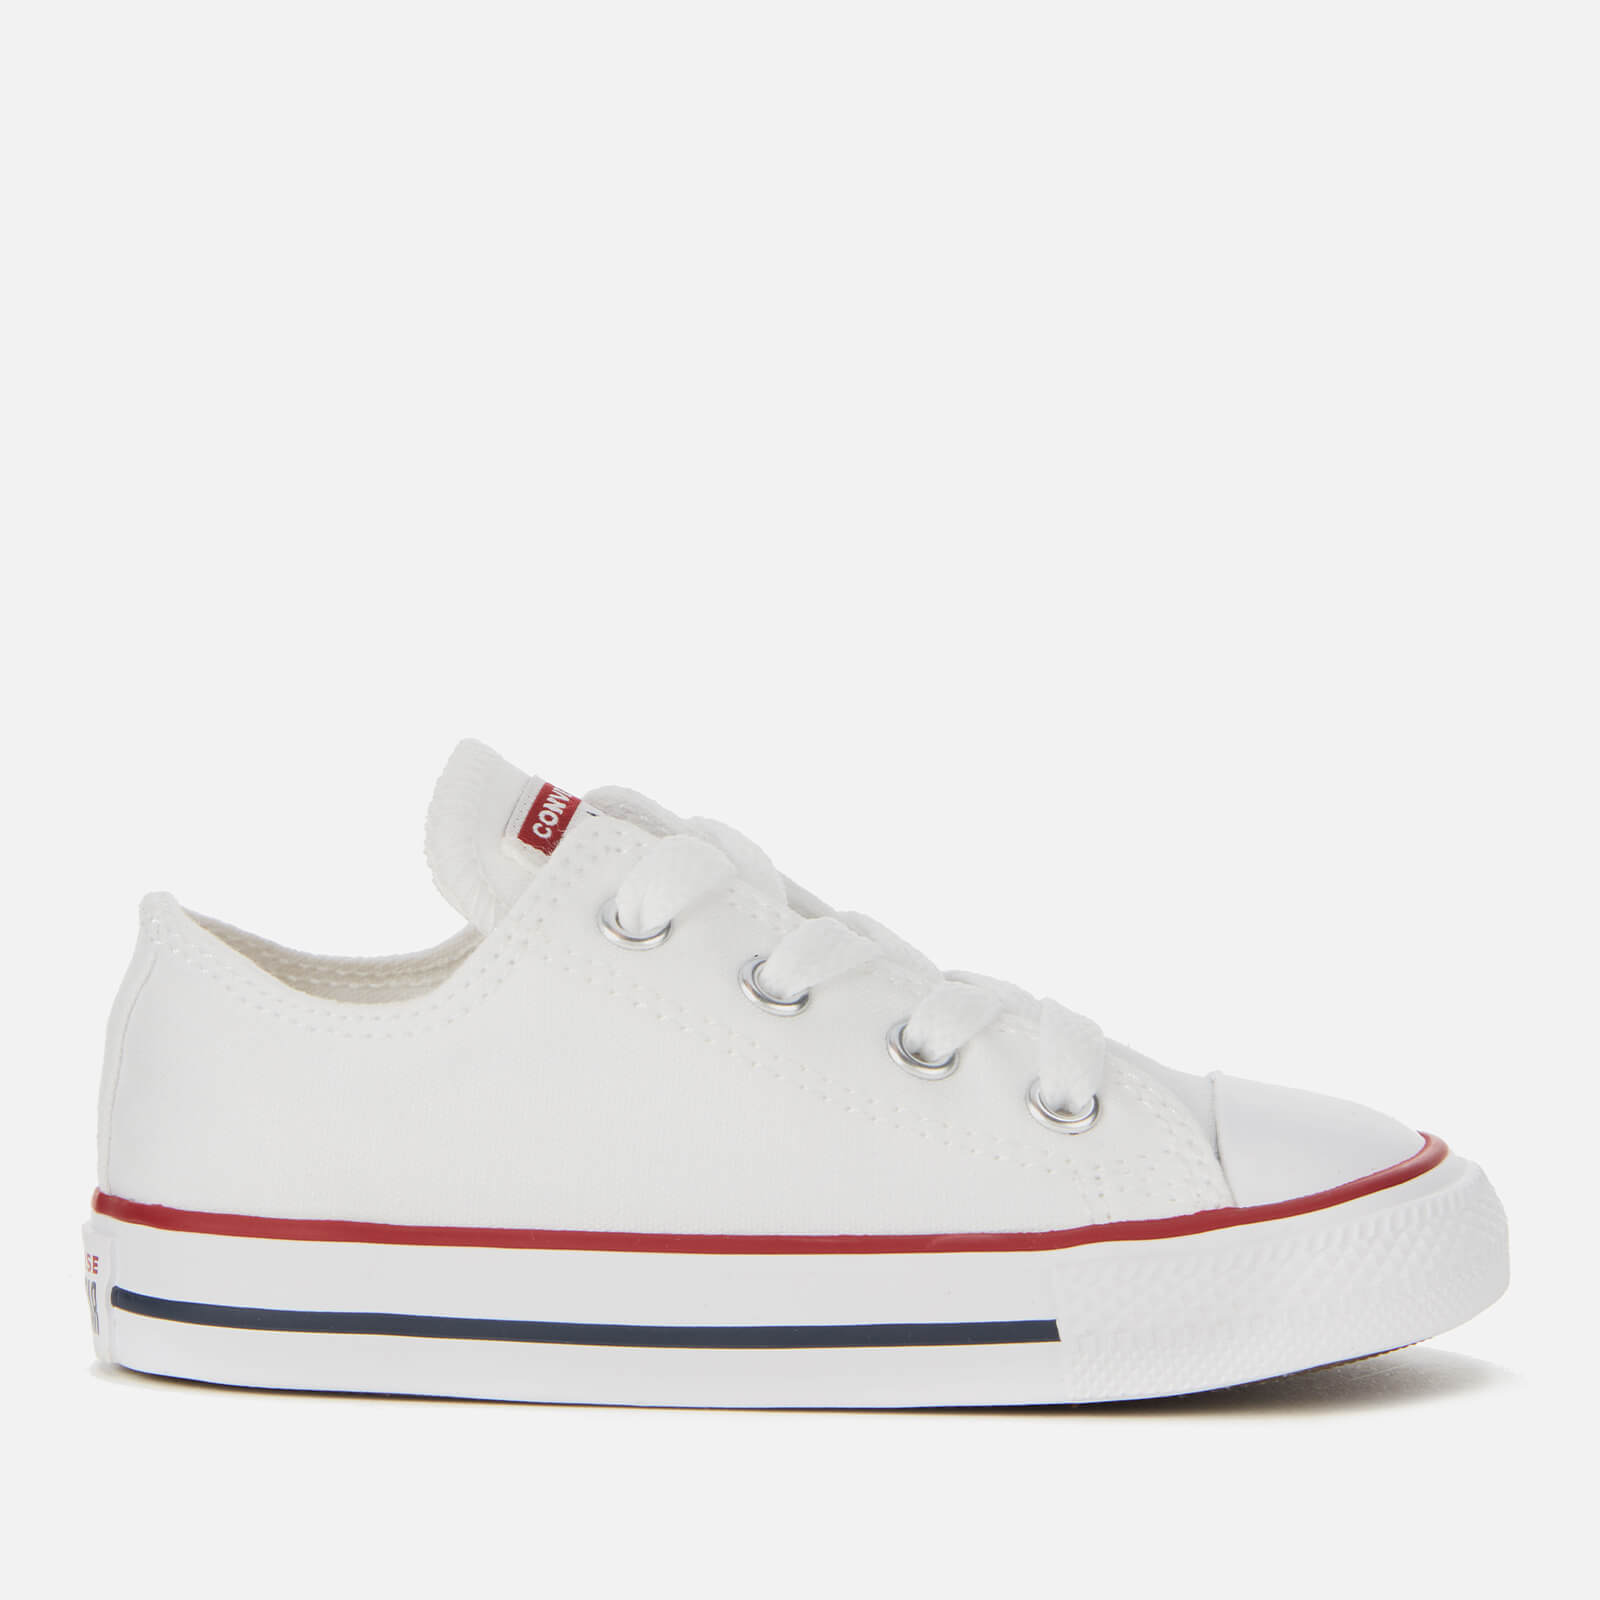 Converse Toddlers' Chuck Taylor All Star Ox Trainers WhiteGarnetNavy